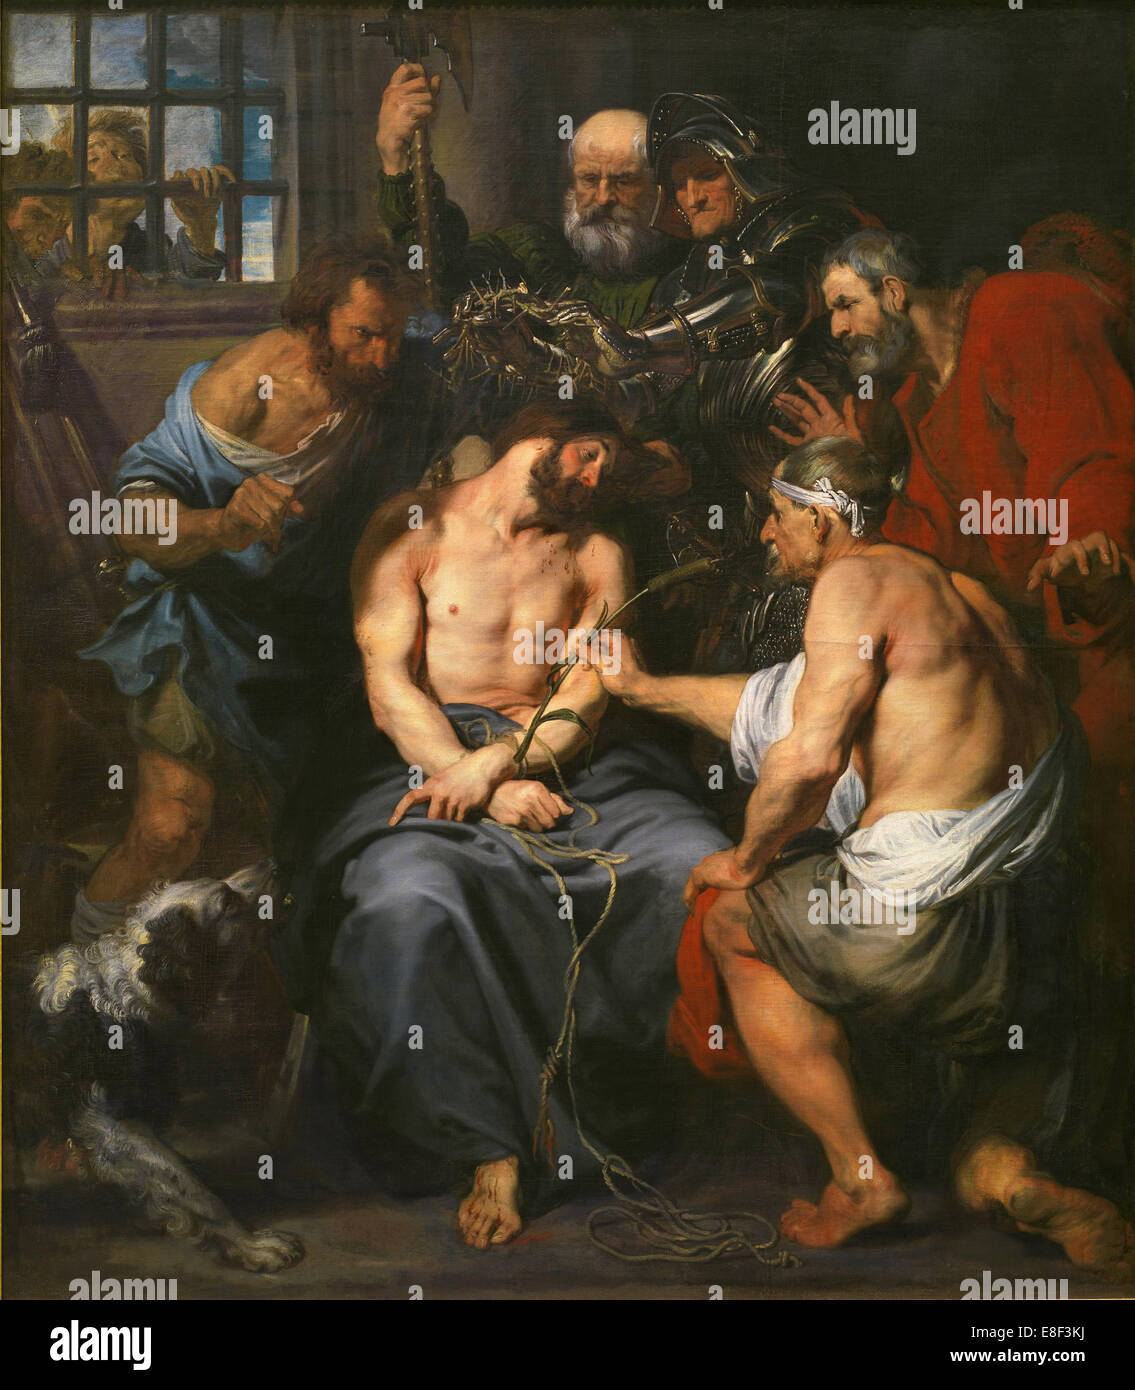 Christ Crowned with Thorns. Artist: Dyck, Sir Anthony van (1599-1641) - Stock Image